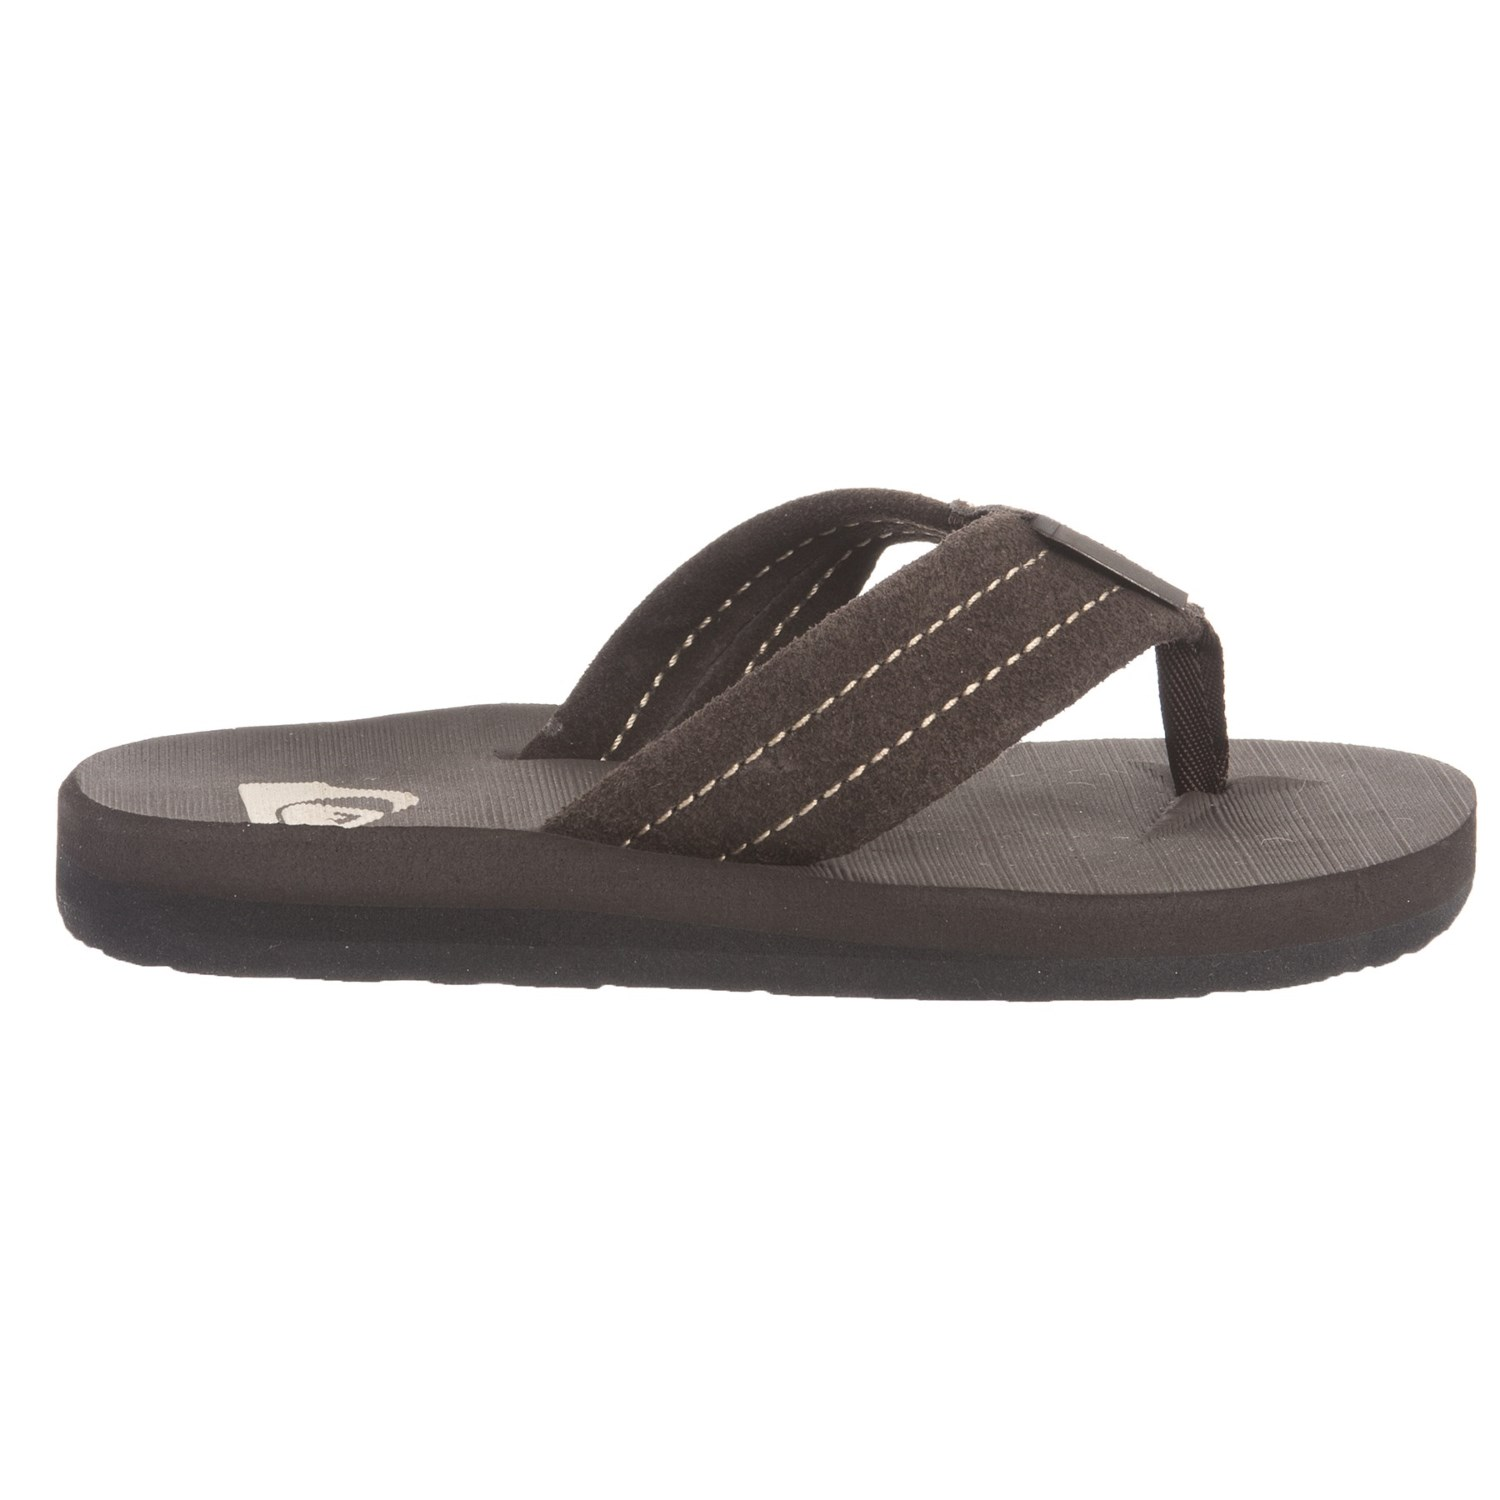 1699eedc539f Quiksilver Carver Flip-Flops (For Boys) - Save 50%